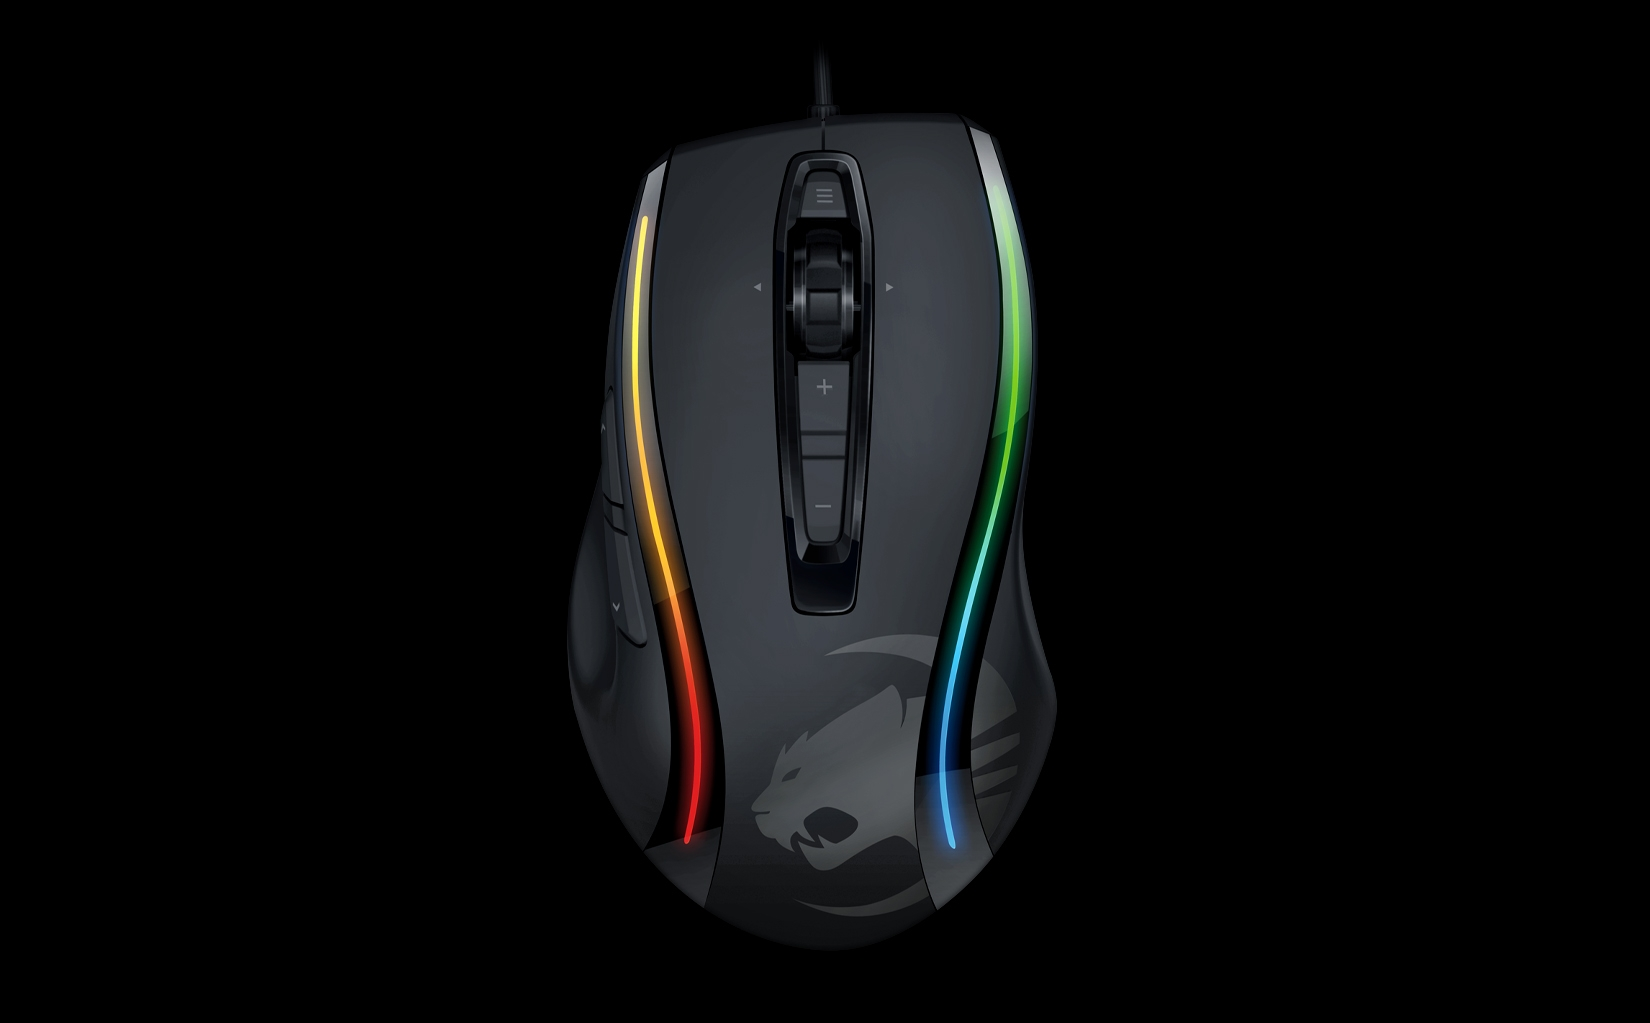 What mouse do you use? Roccat-kone-plus